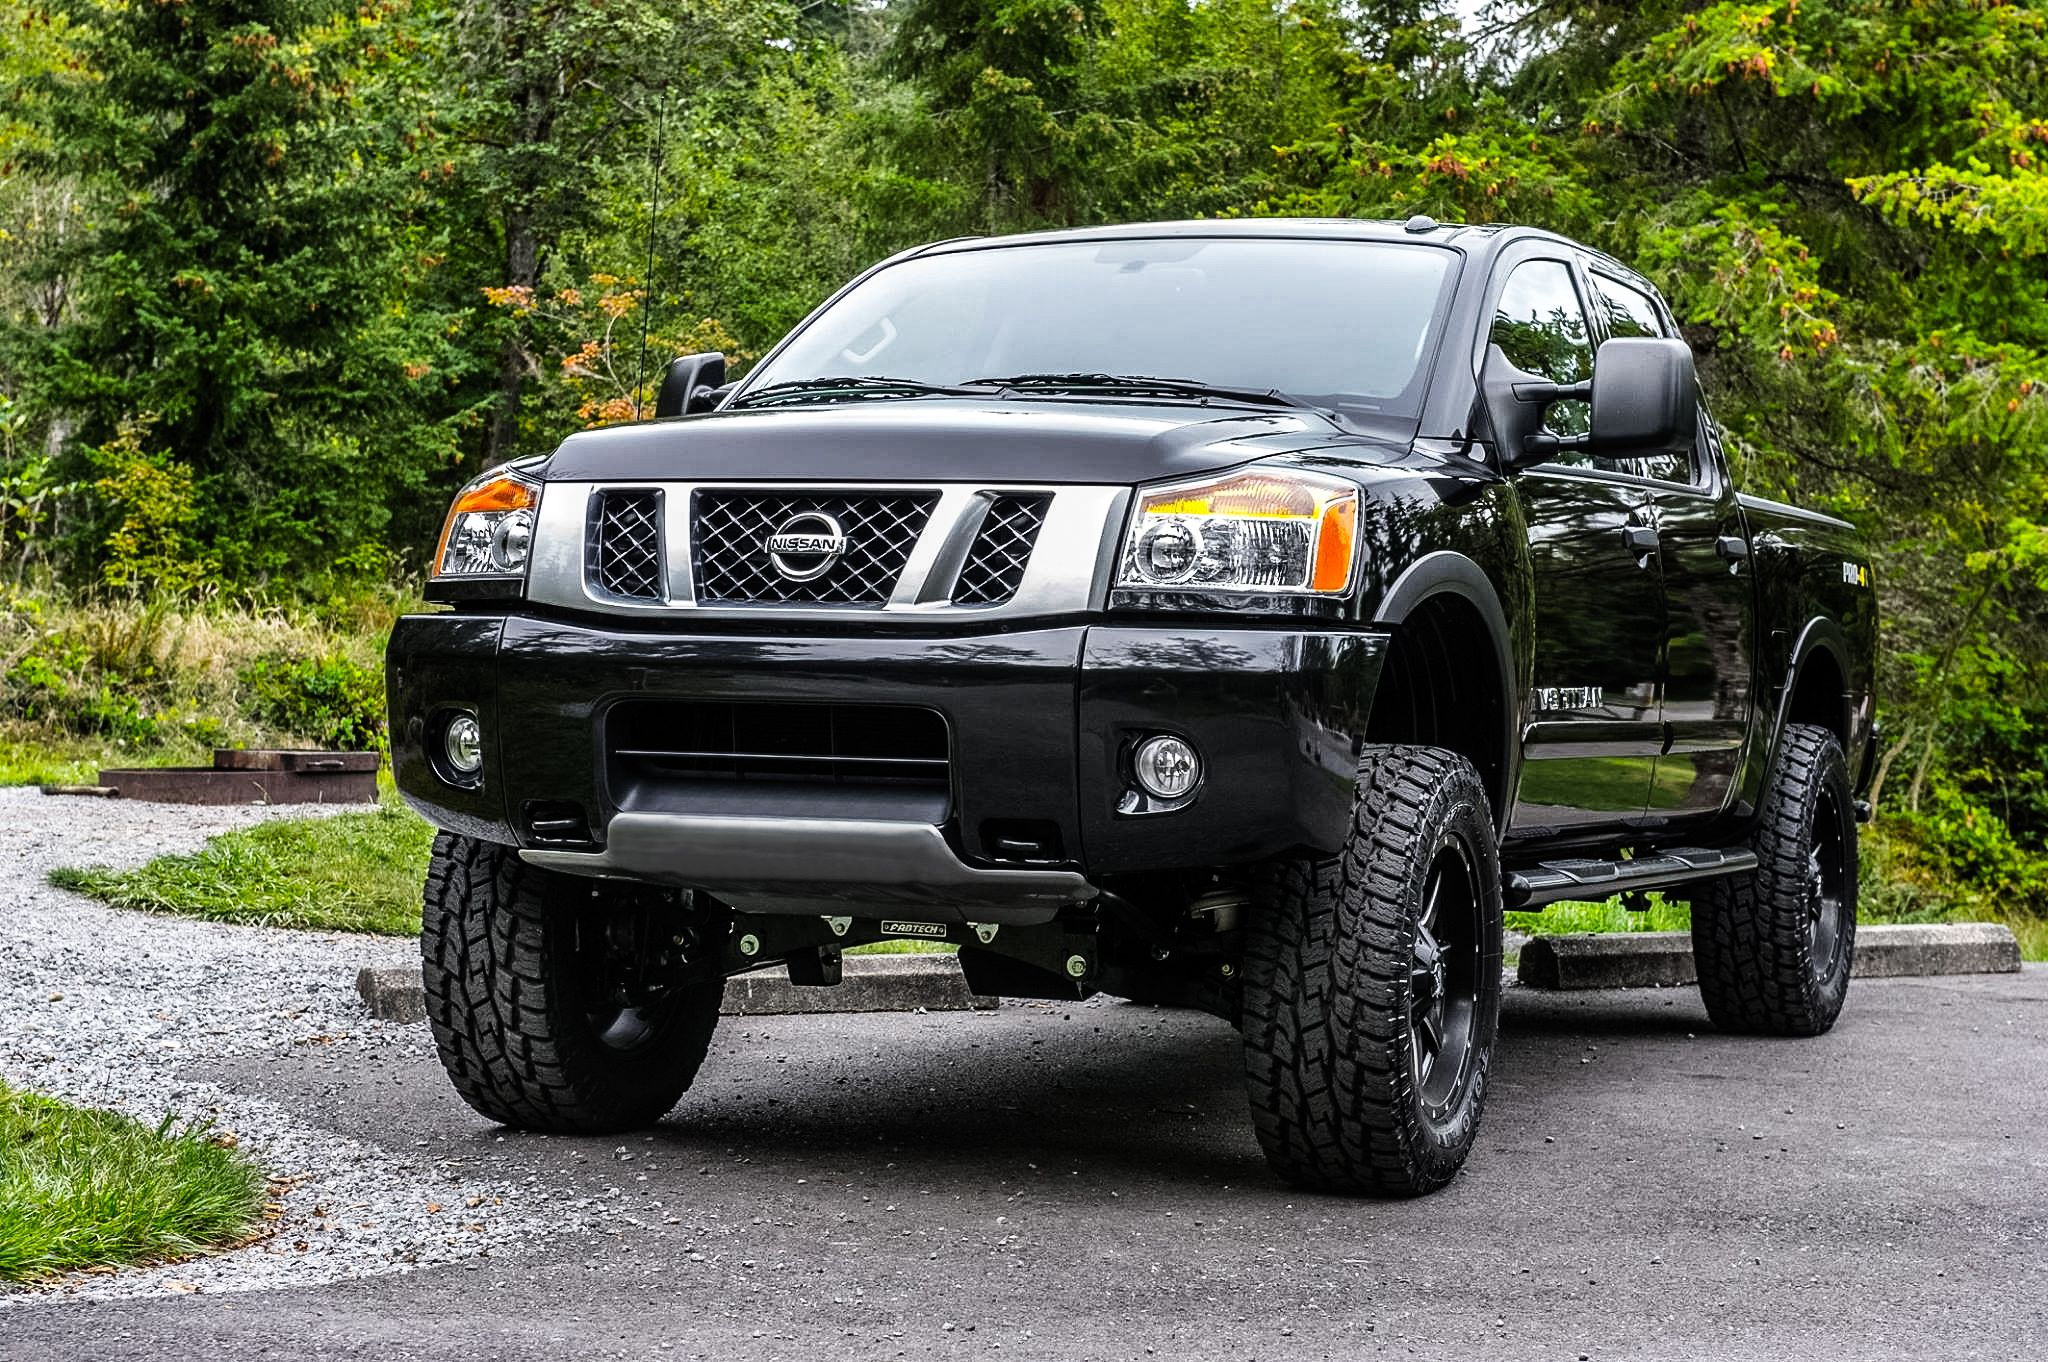 2015 nissan titan pro 4x nissan titan pinterest 2015 nissan titan nissan titan and nissan. Black Bedroom Furniture Sets. Home Design Ideas